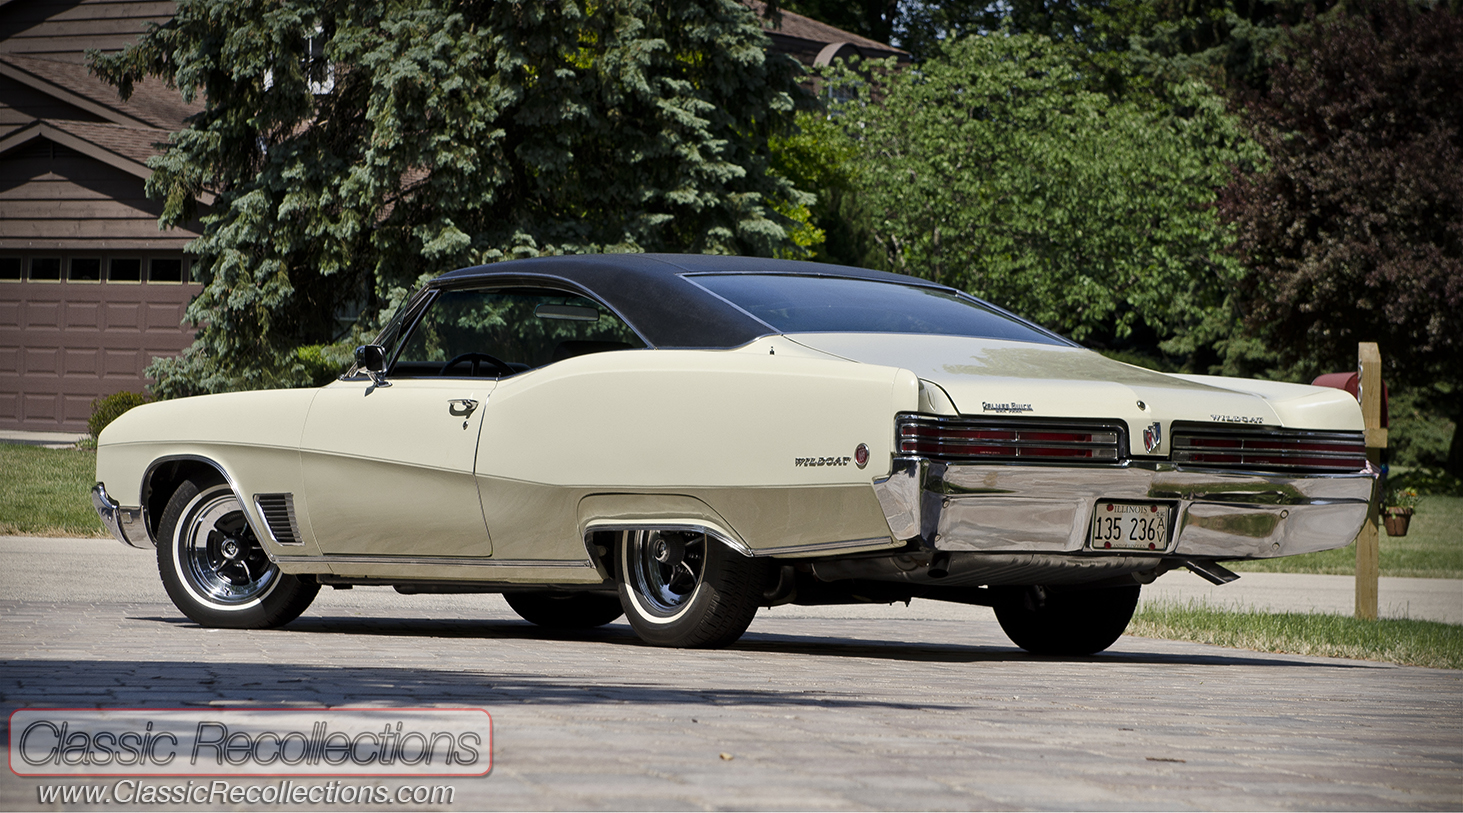 Buick Wildcat is painted in Desert Sand and was sold at Palm Buick